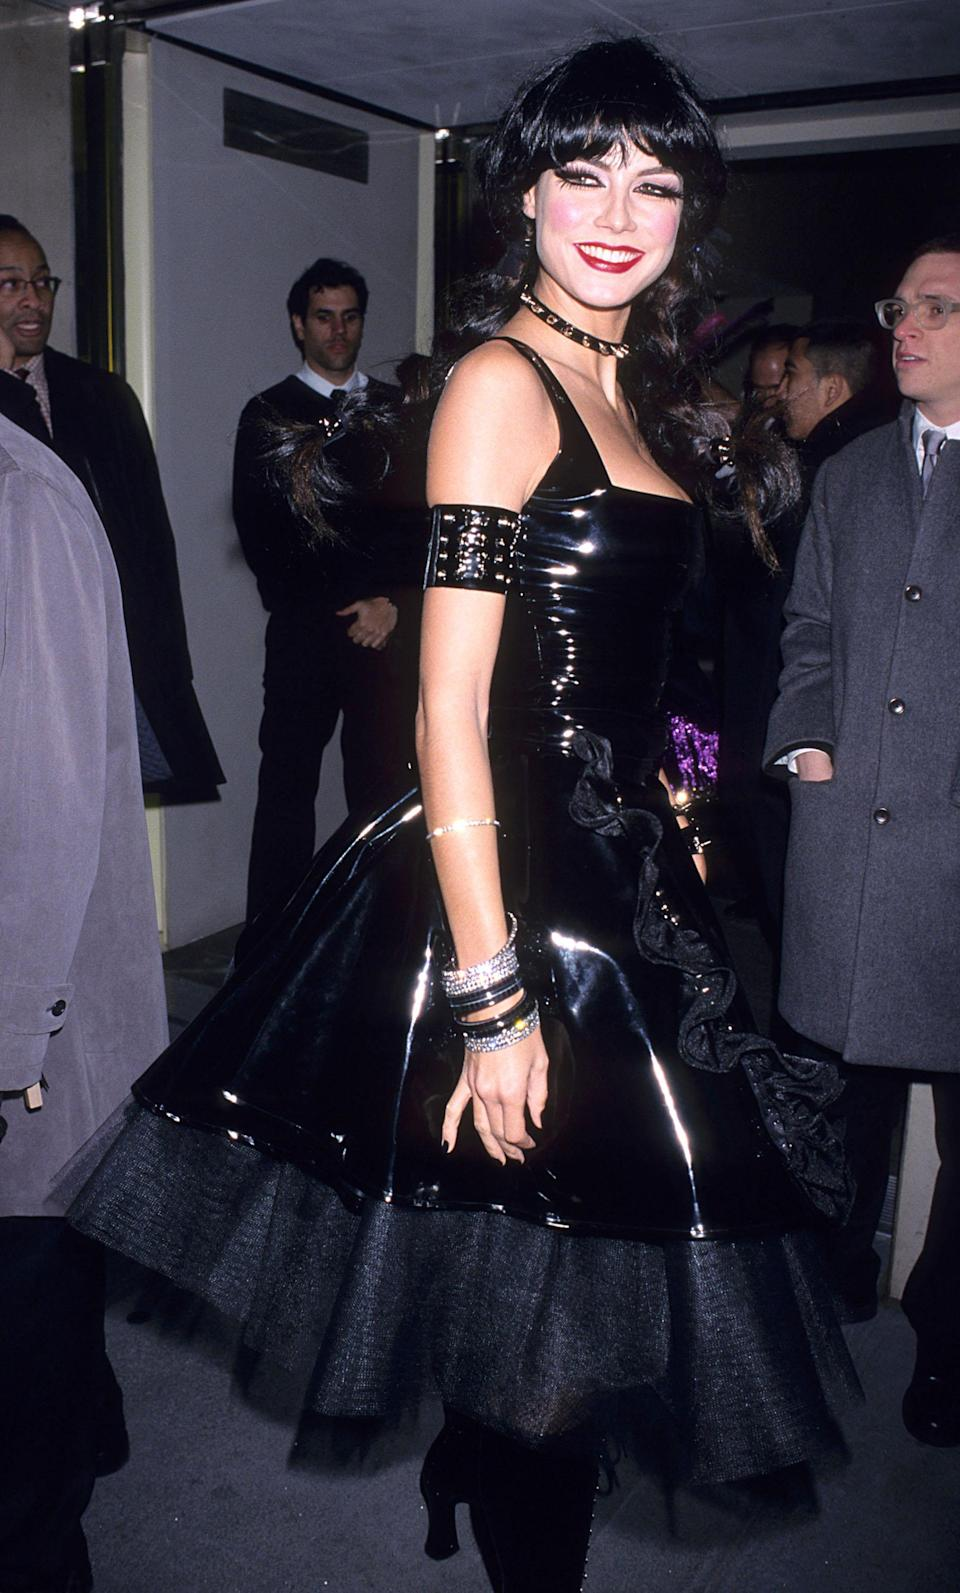 In the year 2000, Klum rocked up wearing a dominatrix style look. <em>[Photo: Getty]</em>